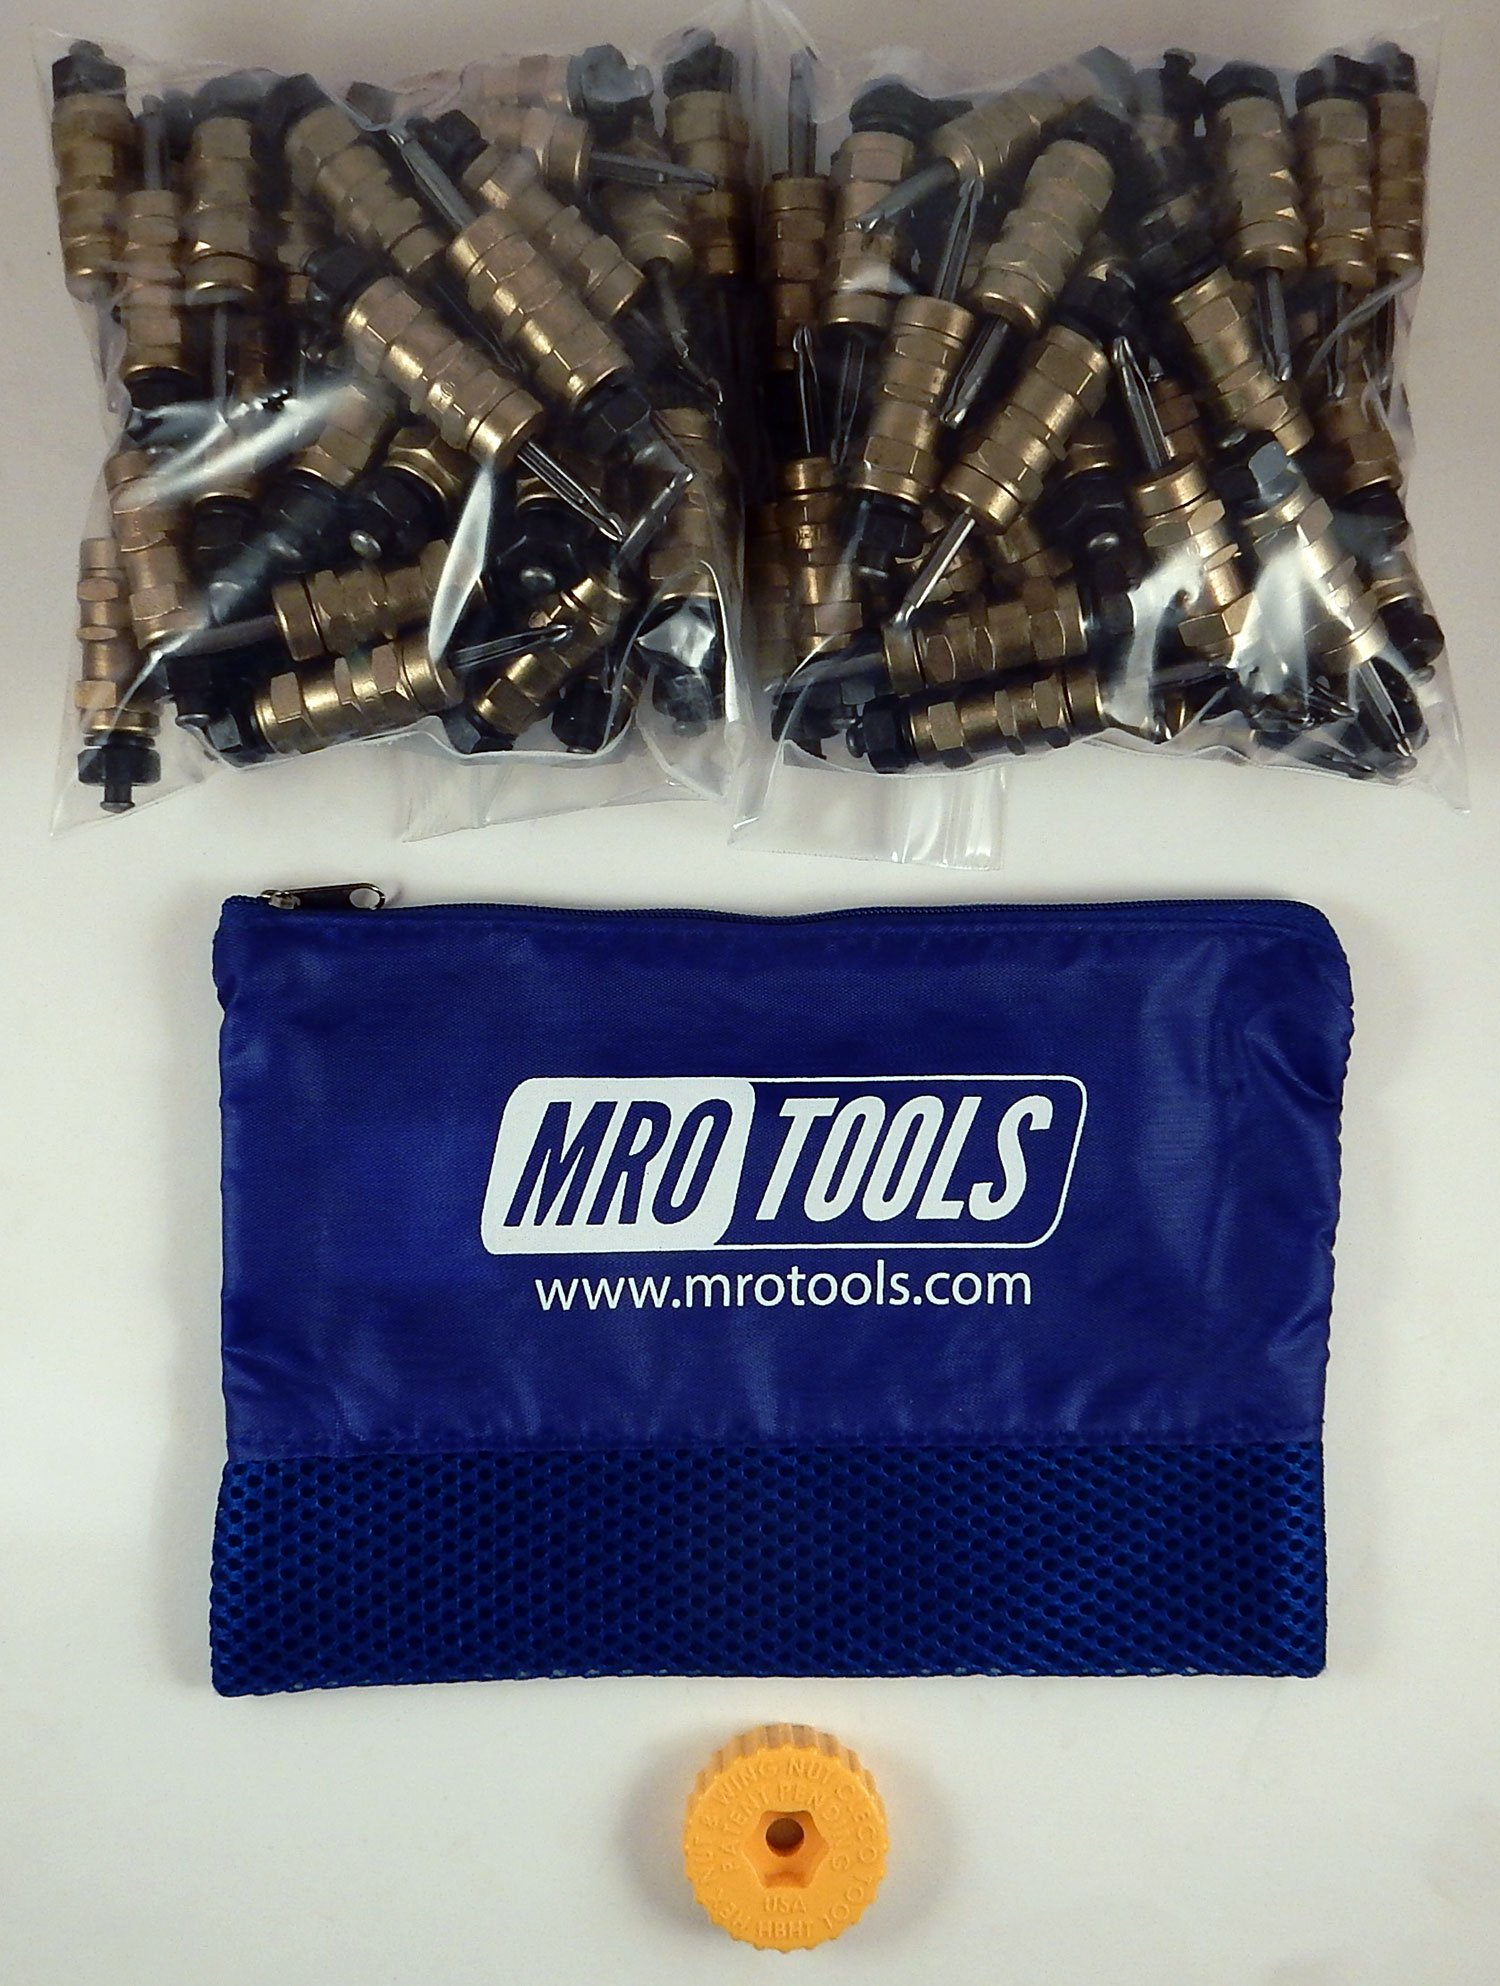 100 3/16 Standard Hex-Nut Cleco Fasteners w/ HBHT Tool & Carry Bag (KHN1S100-3/16) by MRO Tools Cleco Fasteners